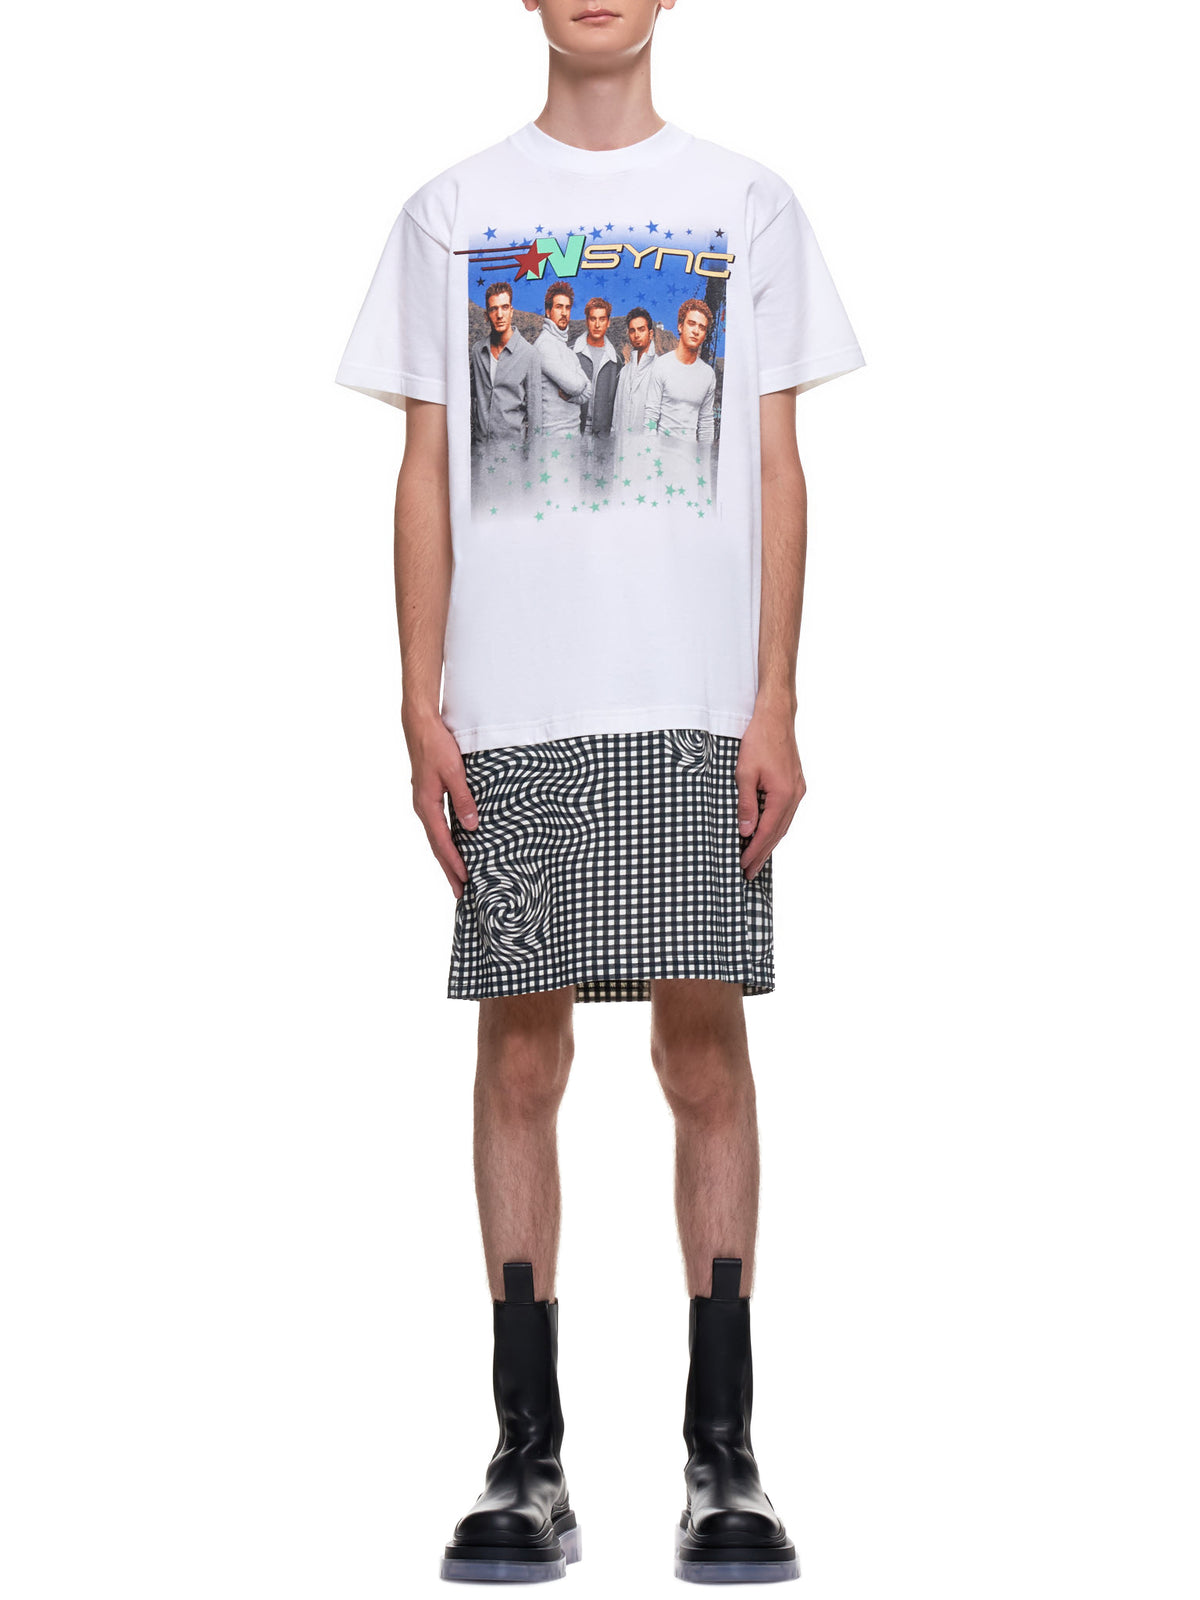 Distorted Gingham Vintage Boyband T-Shirt (EP2-NA-WHT-MULTI-NSYNC)